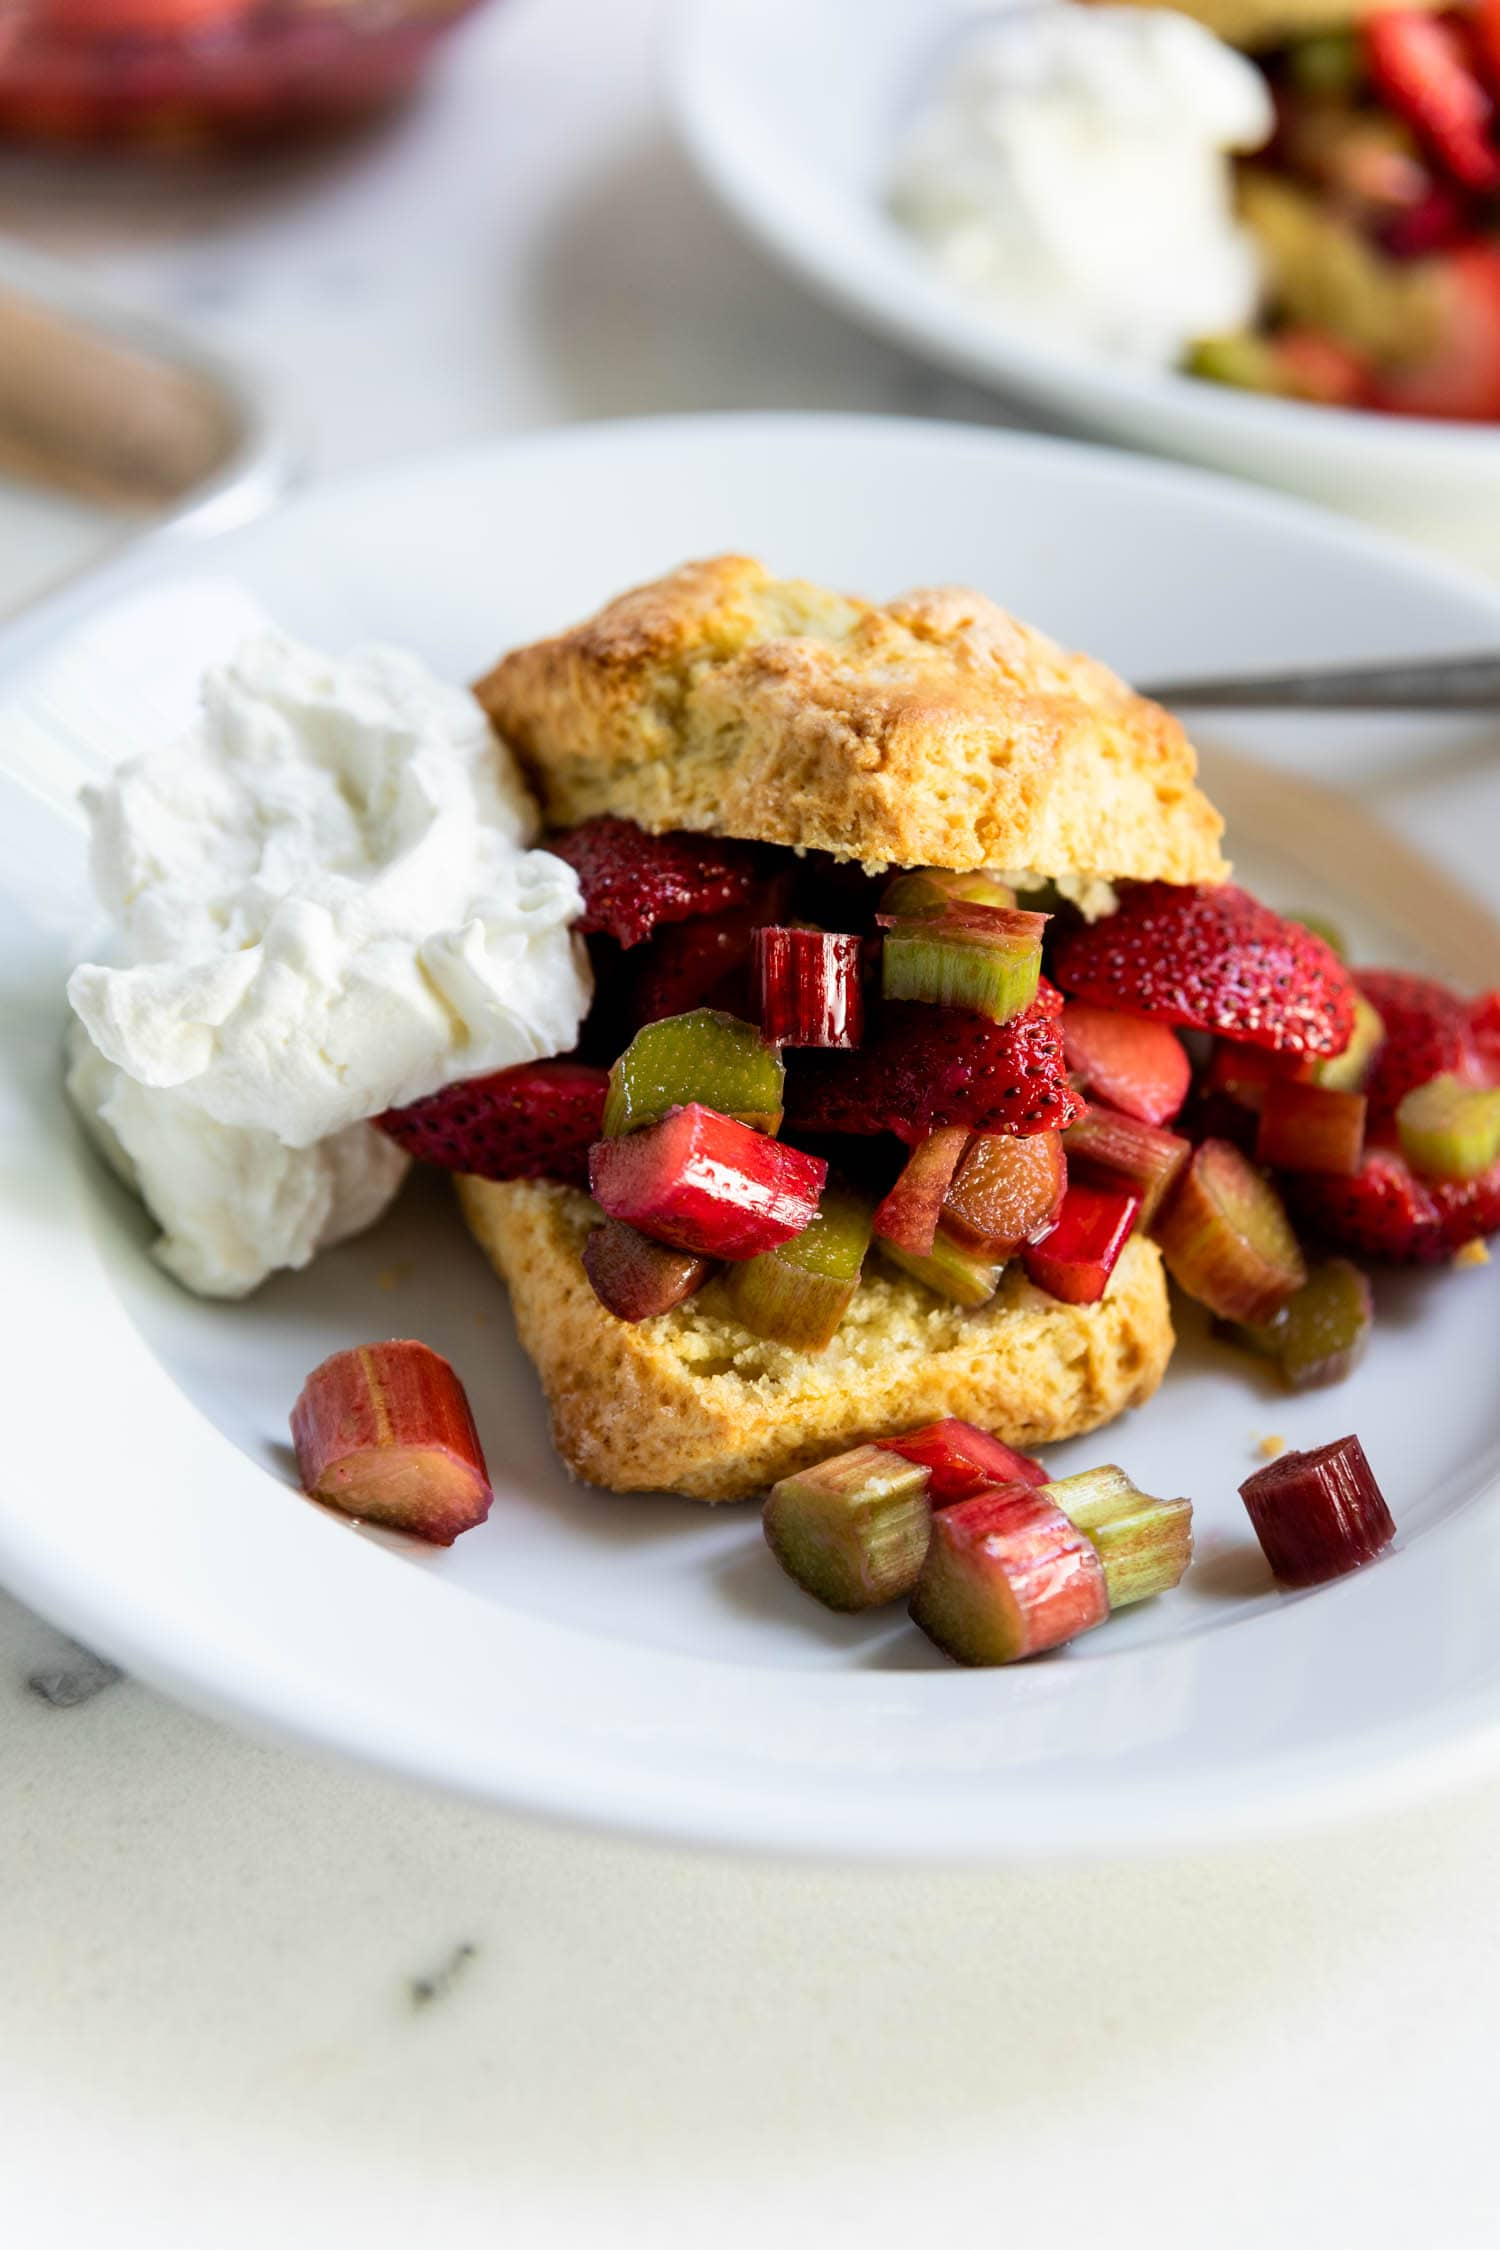 Strawberries, rhubarb and whipped cream on a bowl sandwiched between two golden biscuits on a marble surface